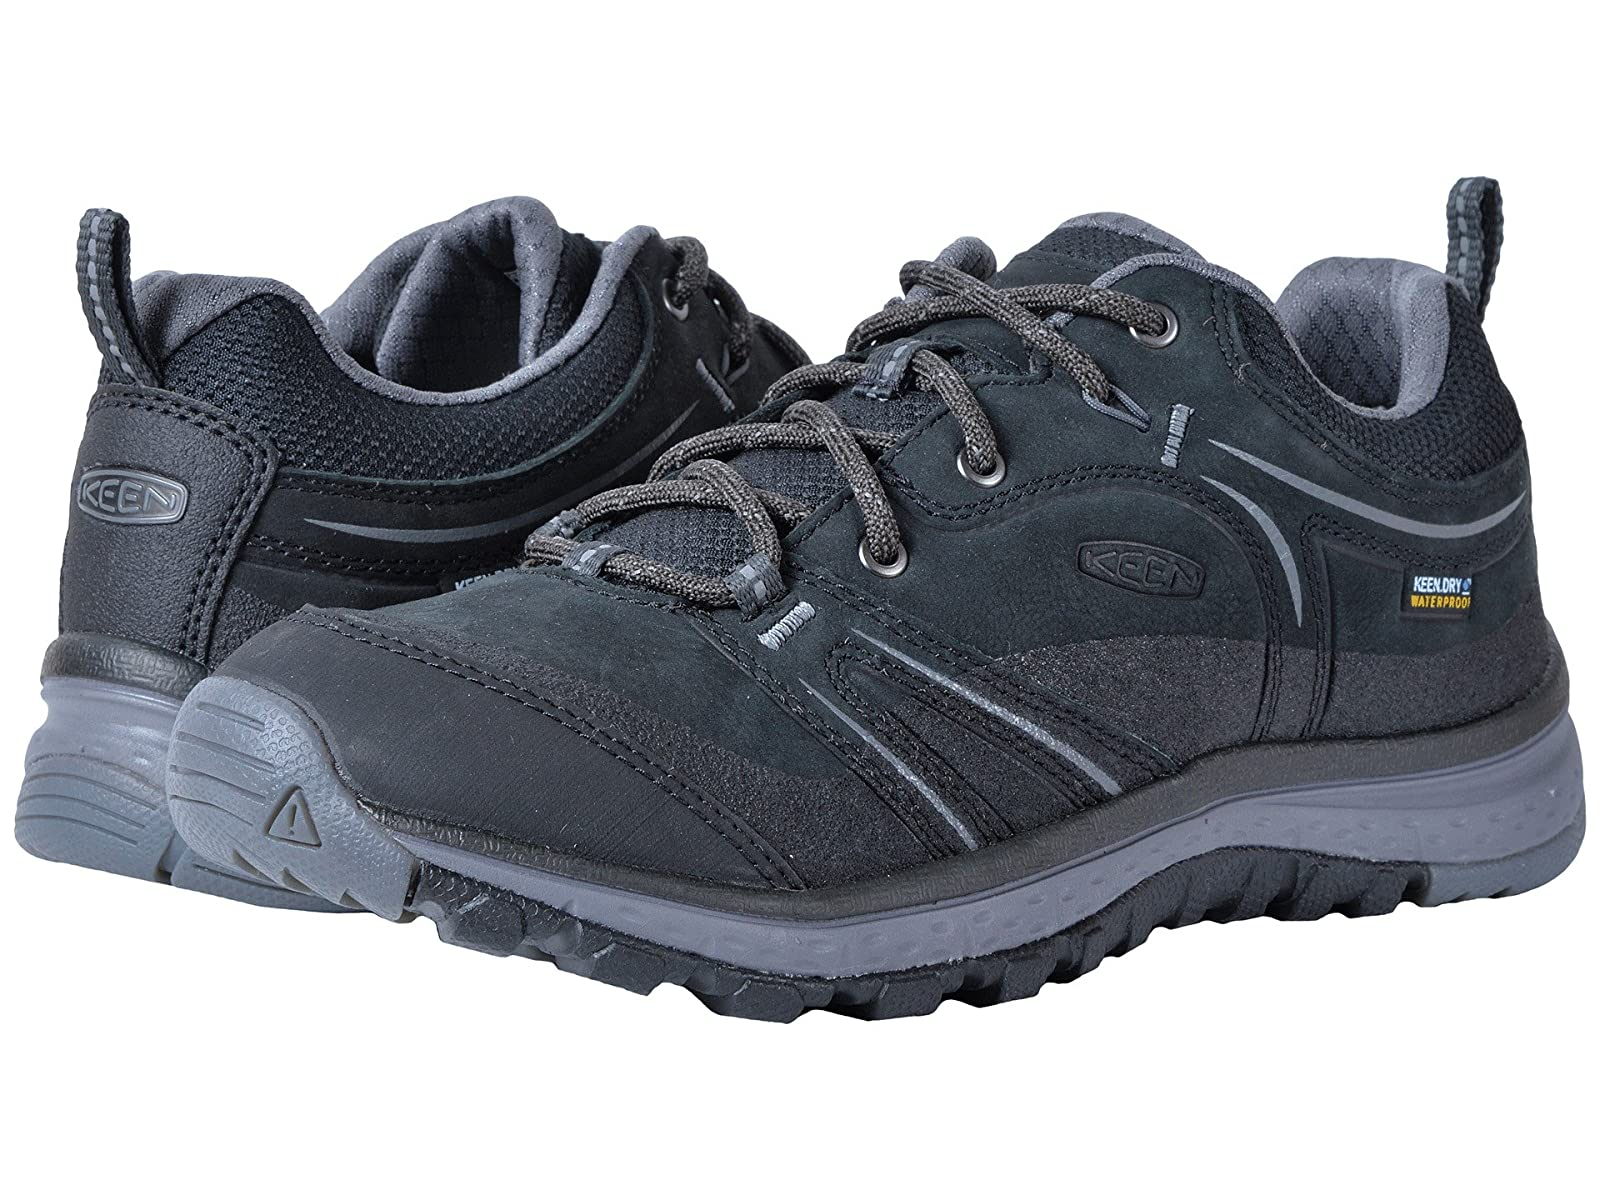 Keen Terradora Leather WaterproofAtmospheric grades have affordable shoes